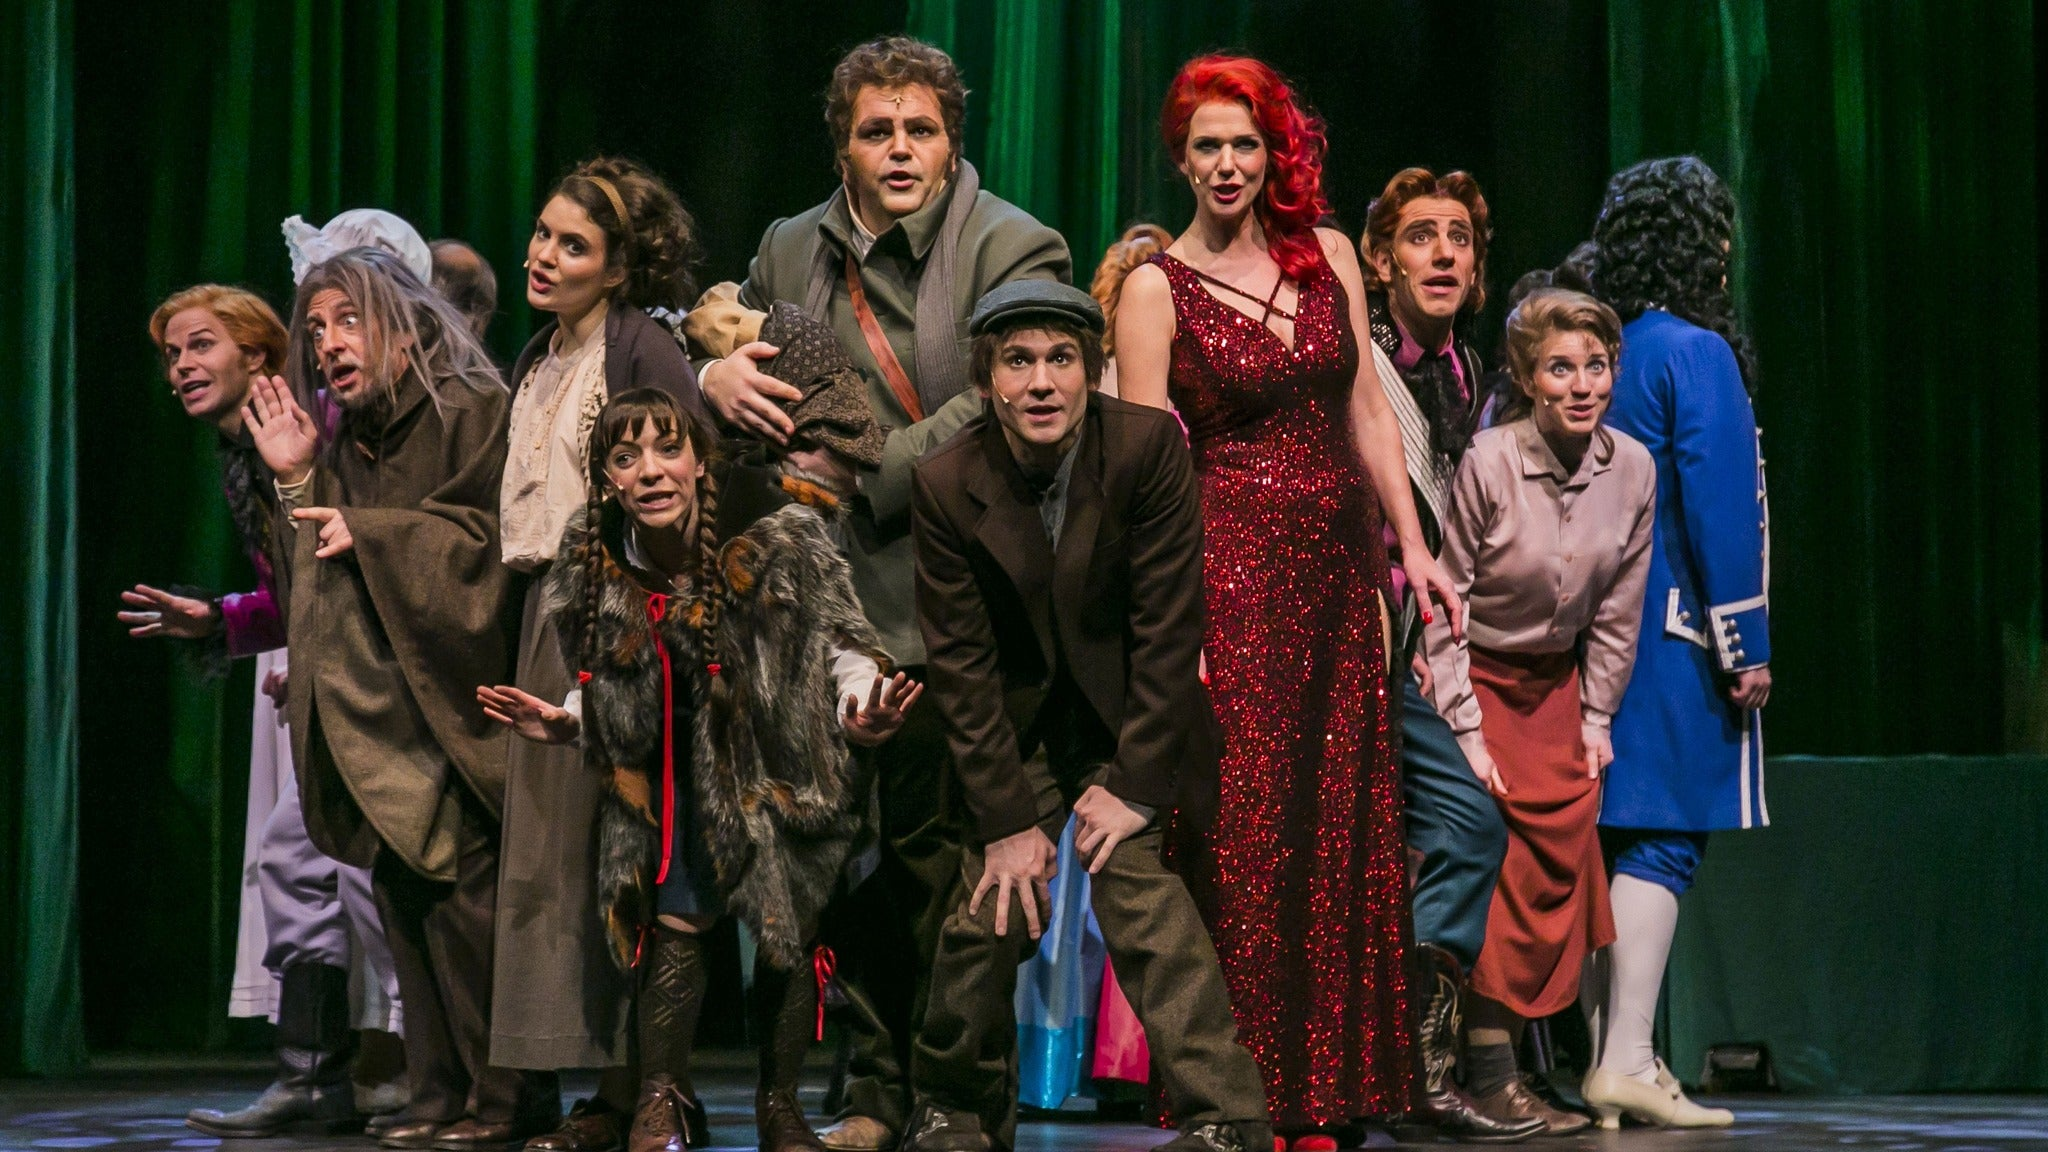 The Addams Family at McCallum Theatre